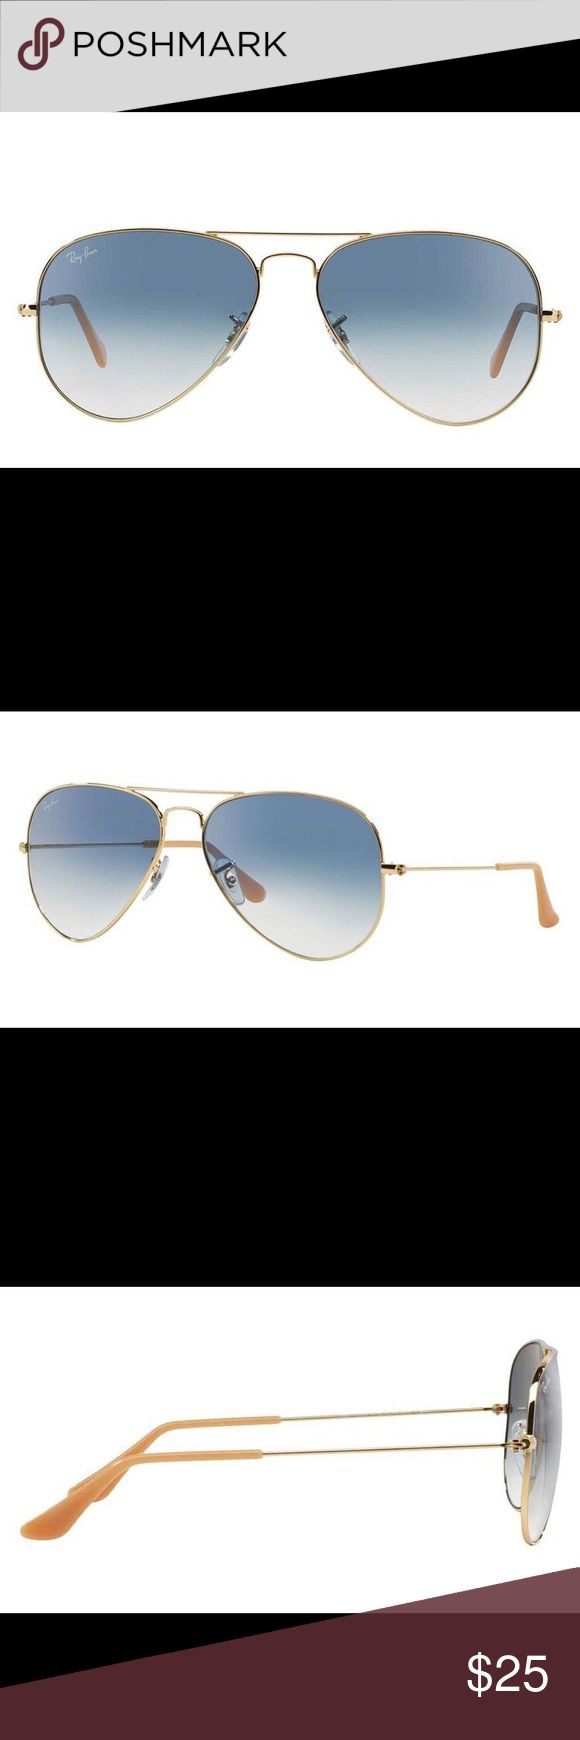 Ray ban blue gradient aviators Light wear; screws a little loose but you can take it in to any eyeglass store and have them tighten it for you.  Comes with sunglass case Ray-Ban Accessories Sunglasses